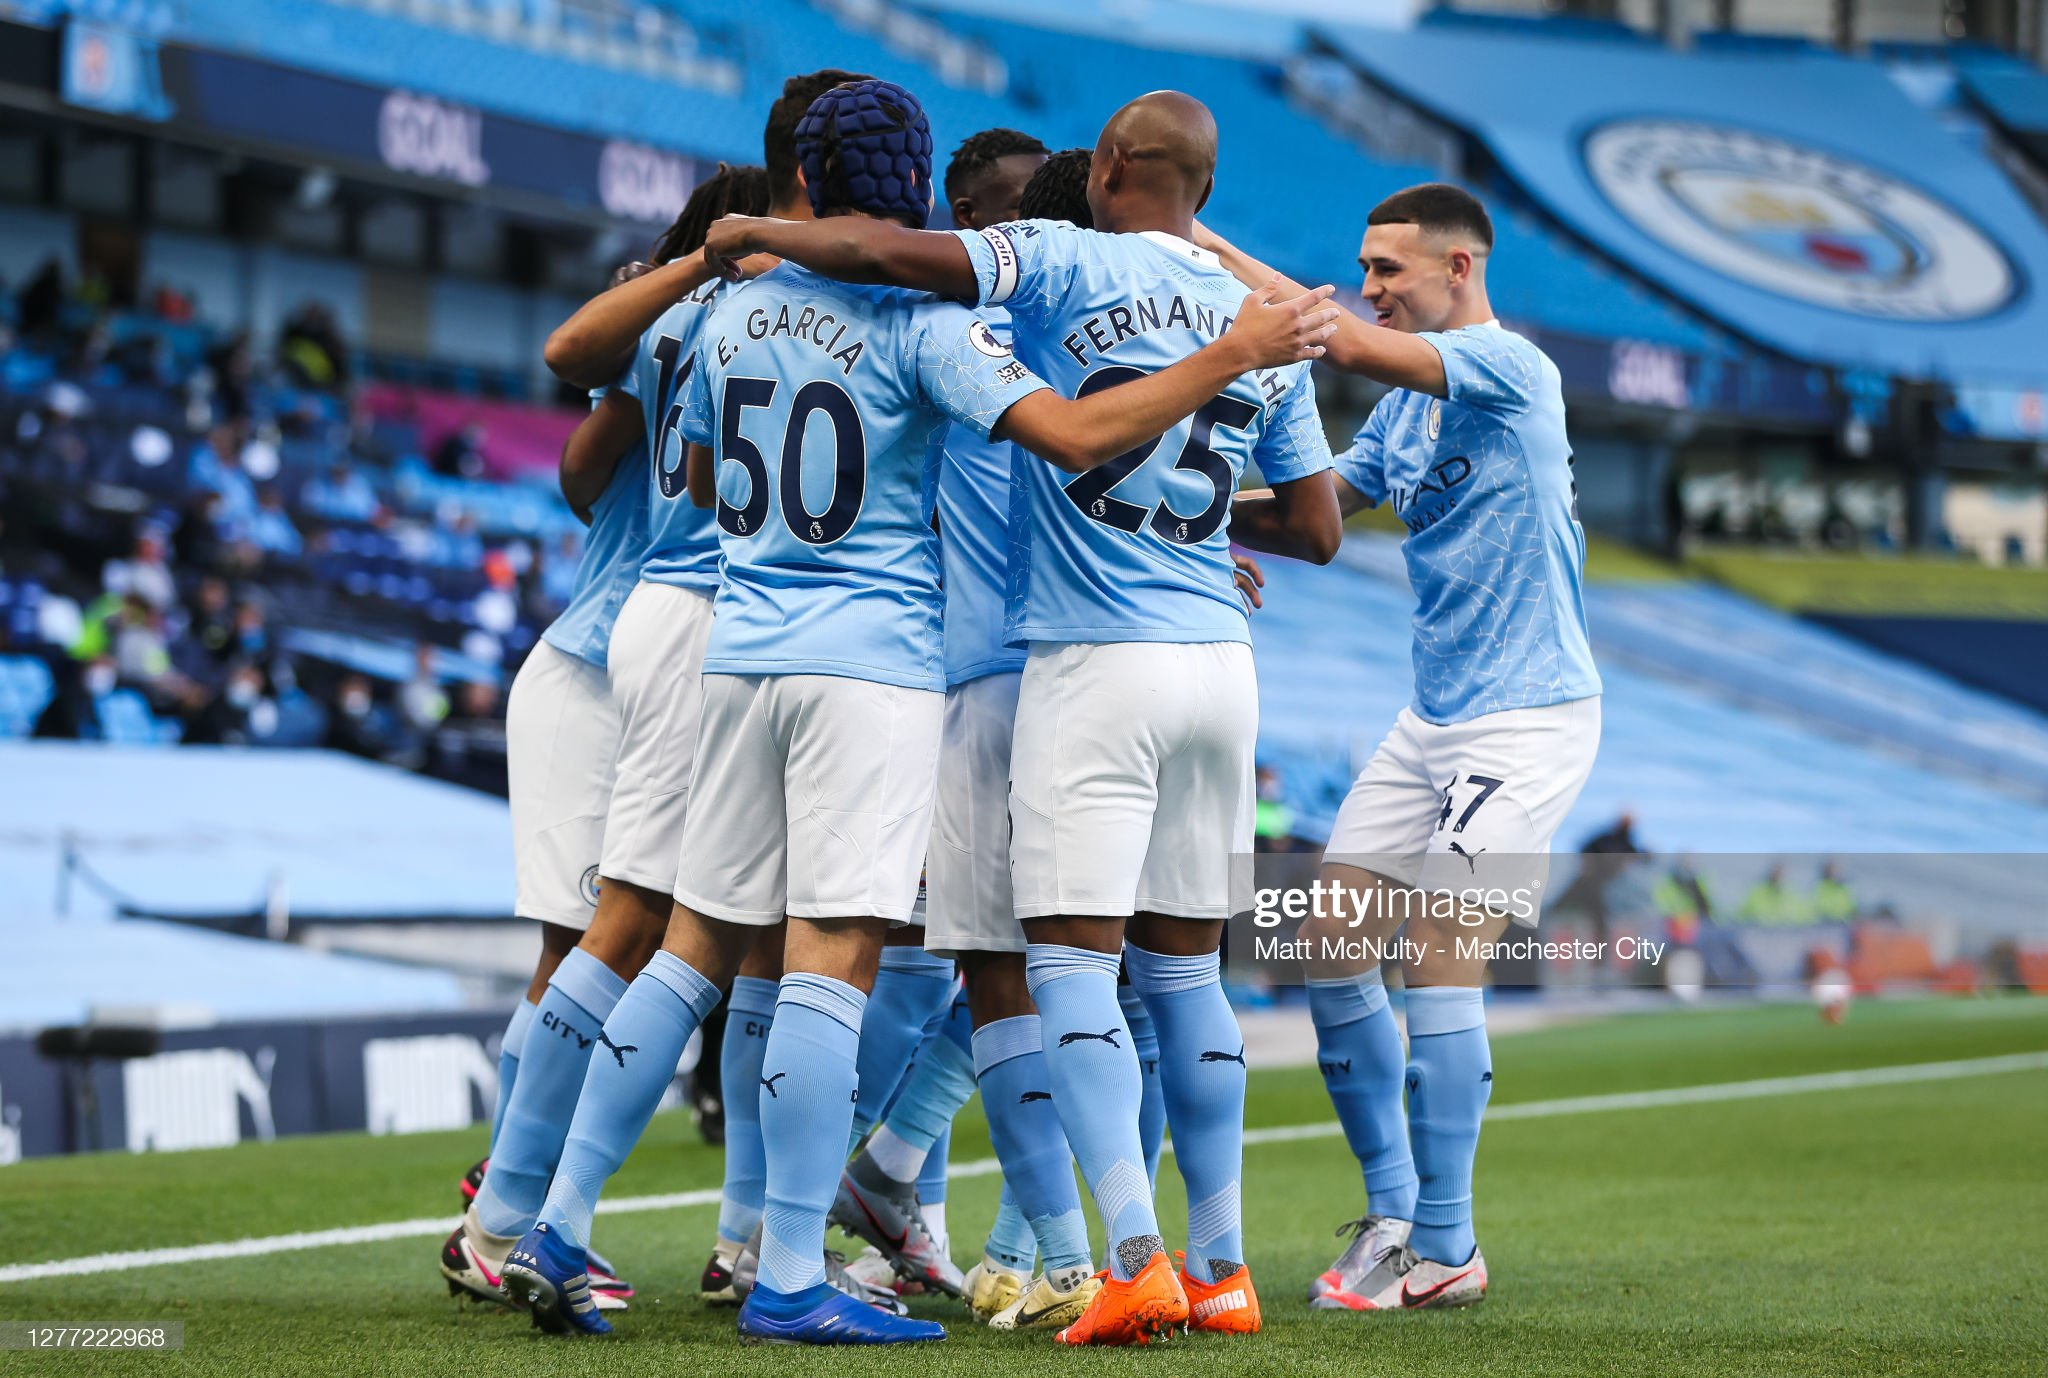 ¿Cuánto mide Eric Garcia? - Altura - Real height Riyad-mahrez-of-manchester-city-celebrates-with-teammates-after-his-picture-id1277222968?s=2048x2048